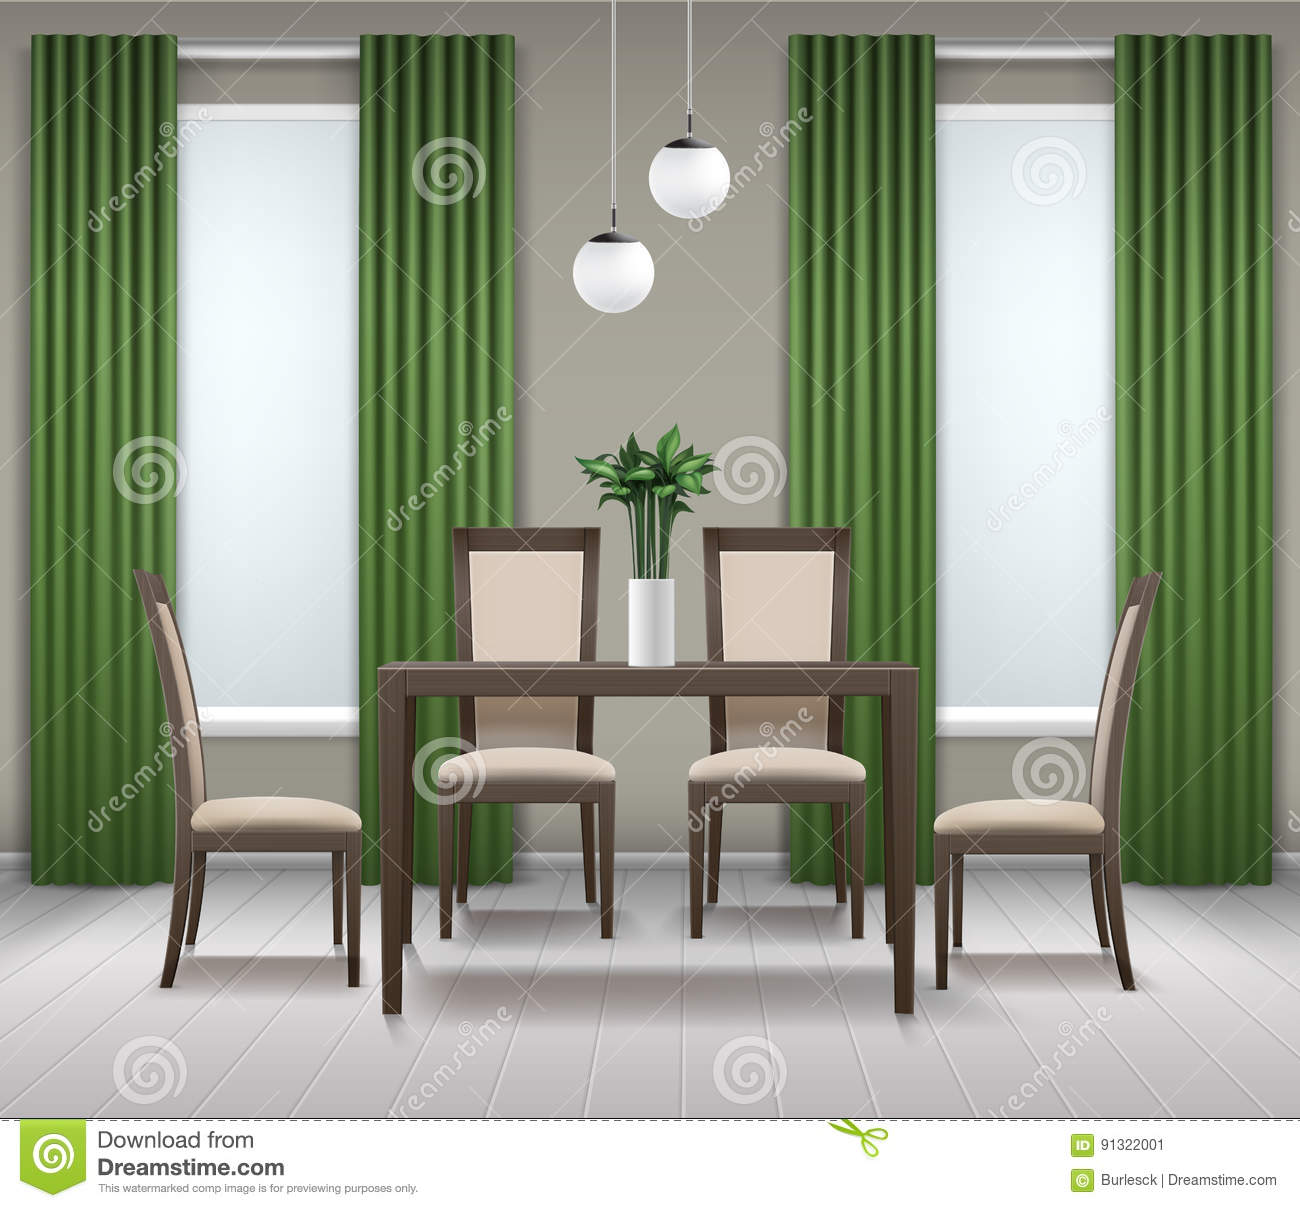 Dining Room Interior Stock Vector Illustration Of Indoors 91322001